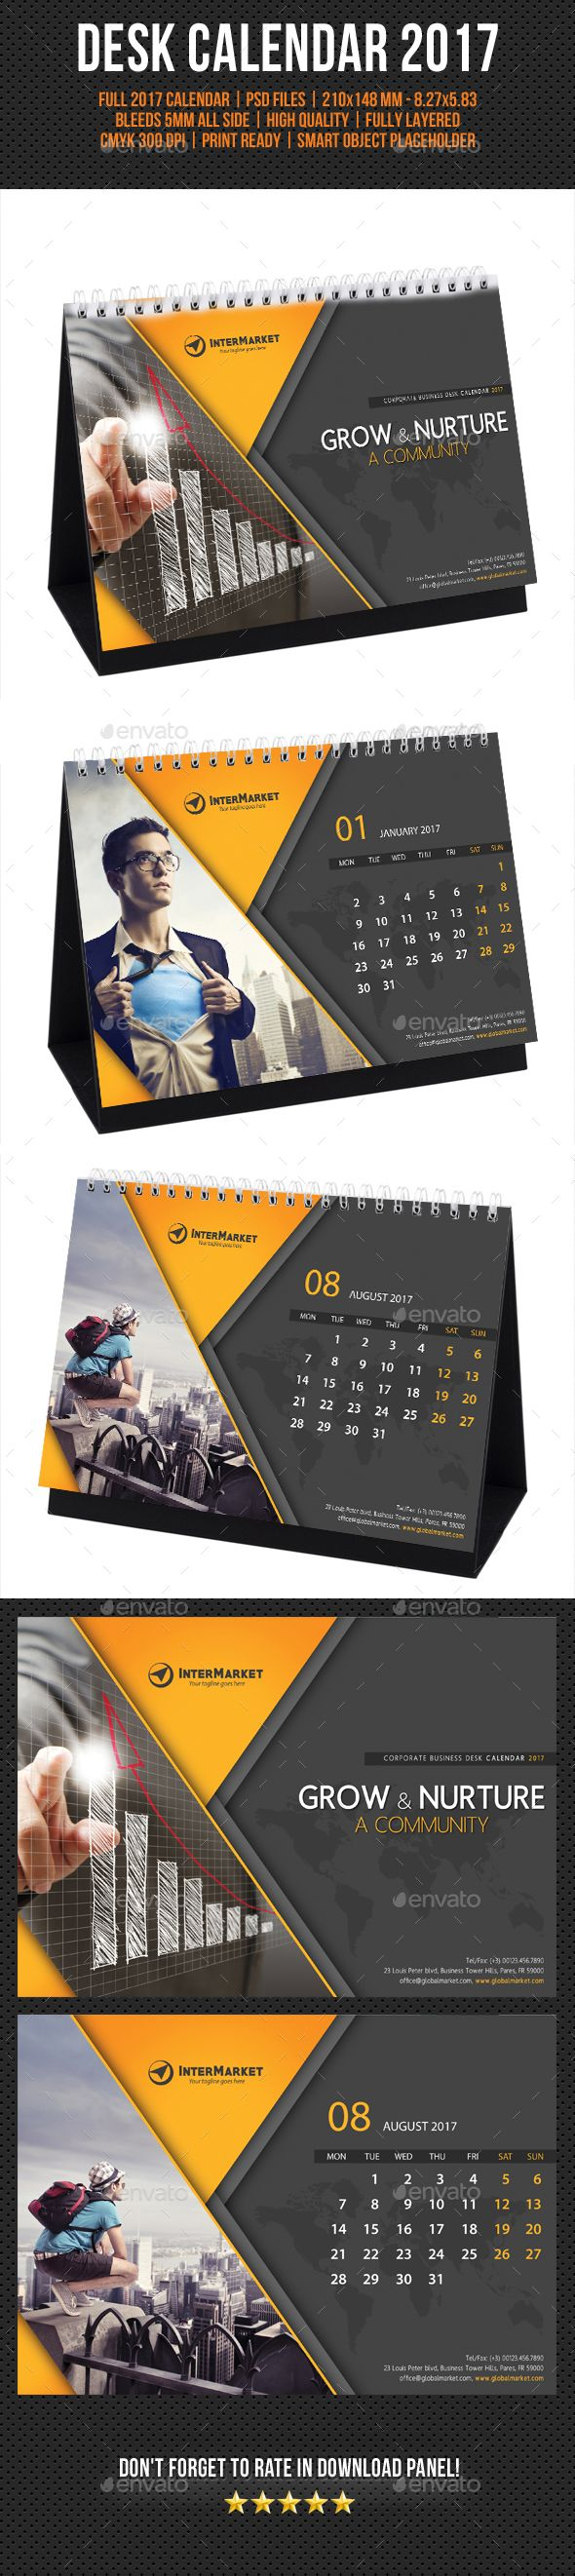 Corporate Desk Calendar 2017 Template PSD